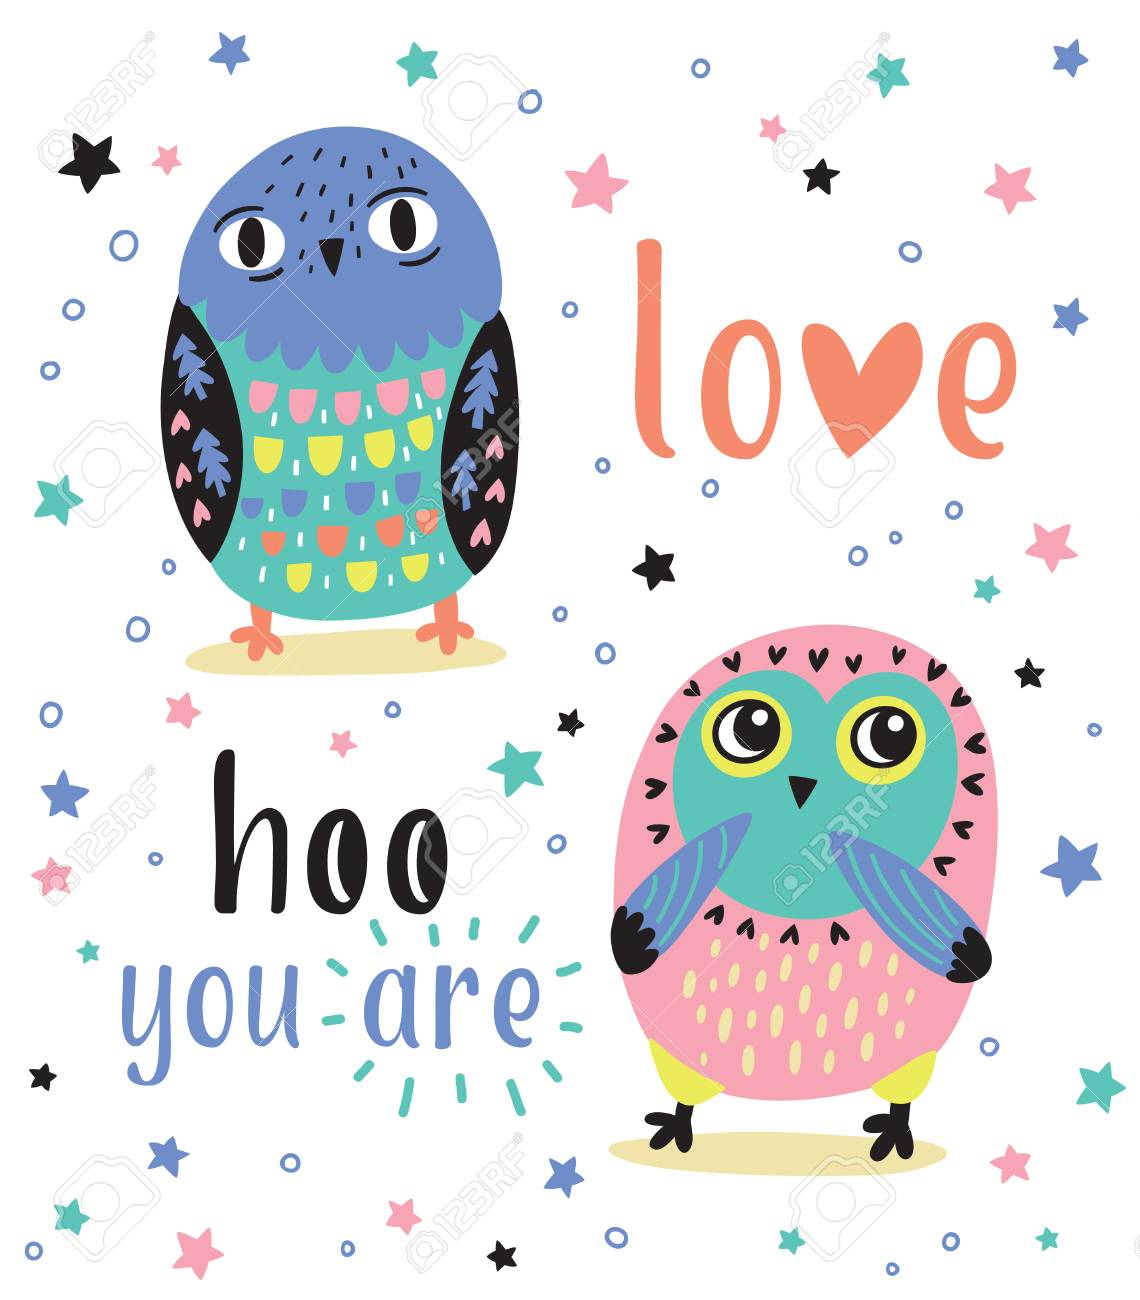 Quote love hoo you are cute romantic card with cartoon owls cute romantic card with cartoon owls for greeting m4hsunfo